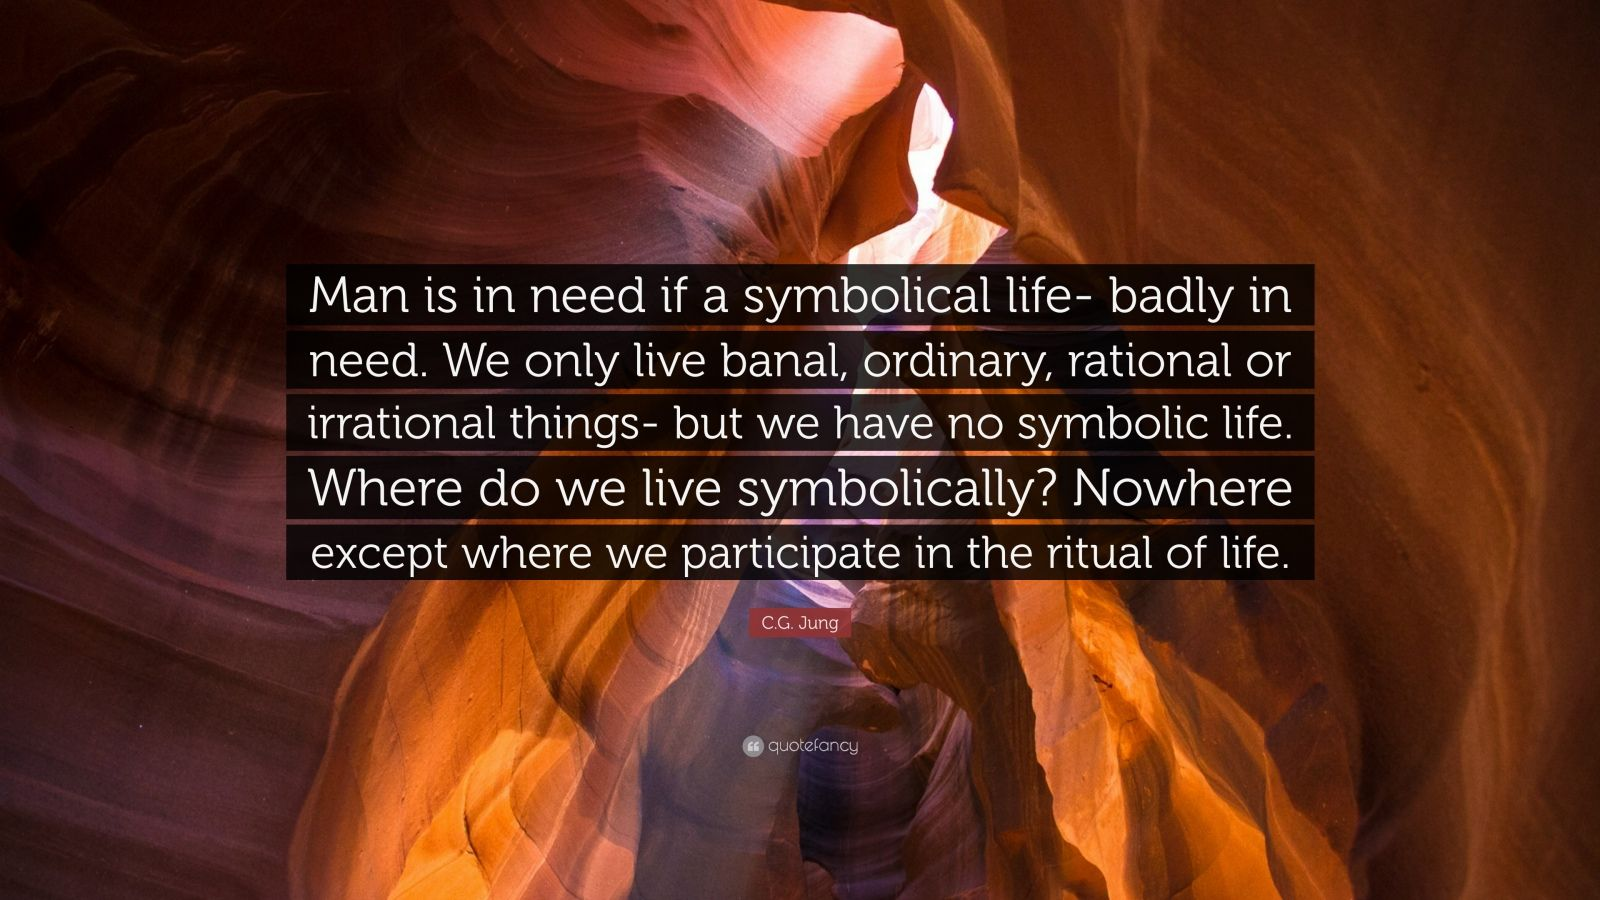 """C.G. Jung Quote: """"Man is in need if a symbolical life- badly in need. We only live banal, ordinary, rational or irrational things- but we have no symbolic life. Where do we live symbolically? Nowhere except where we participate in the ritual of life."""""""